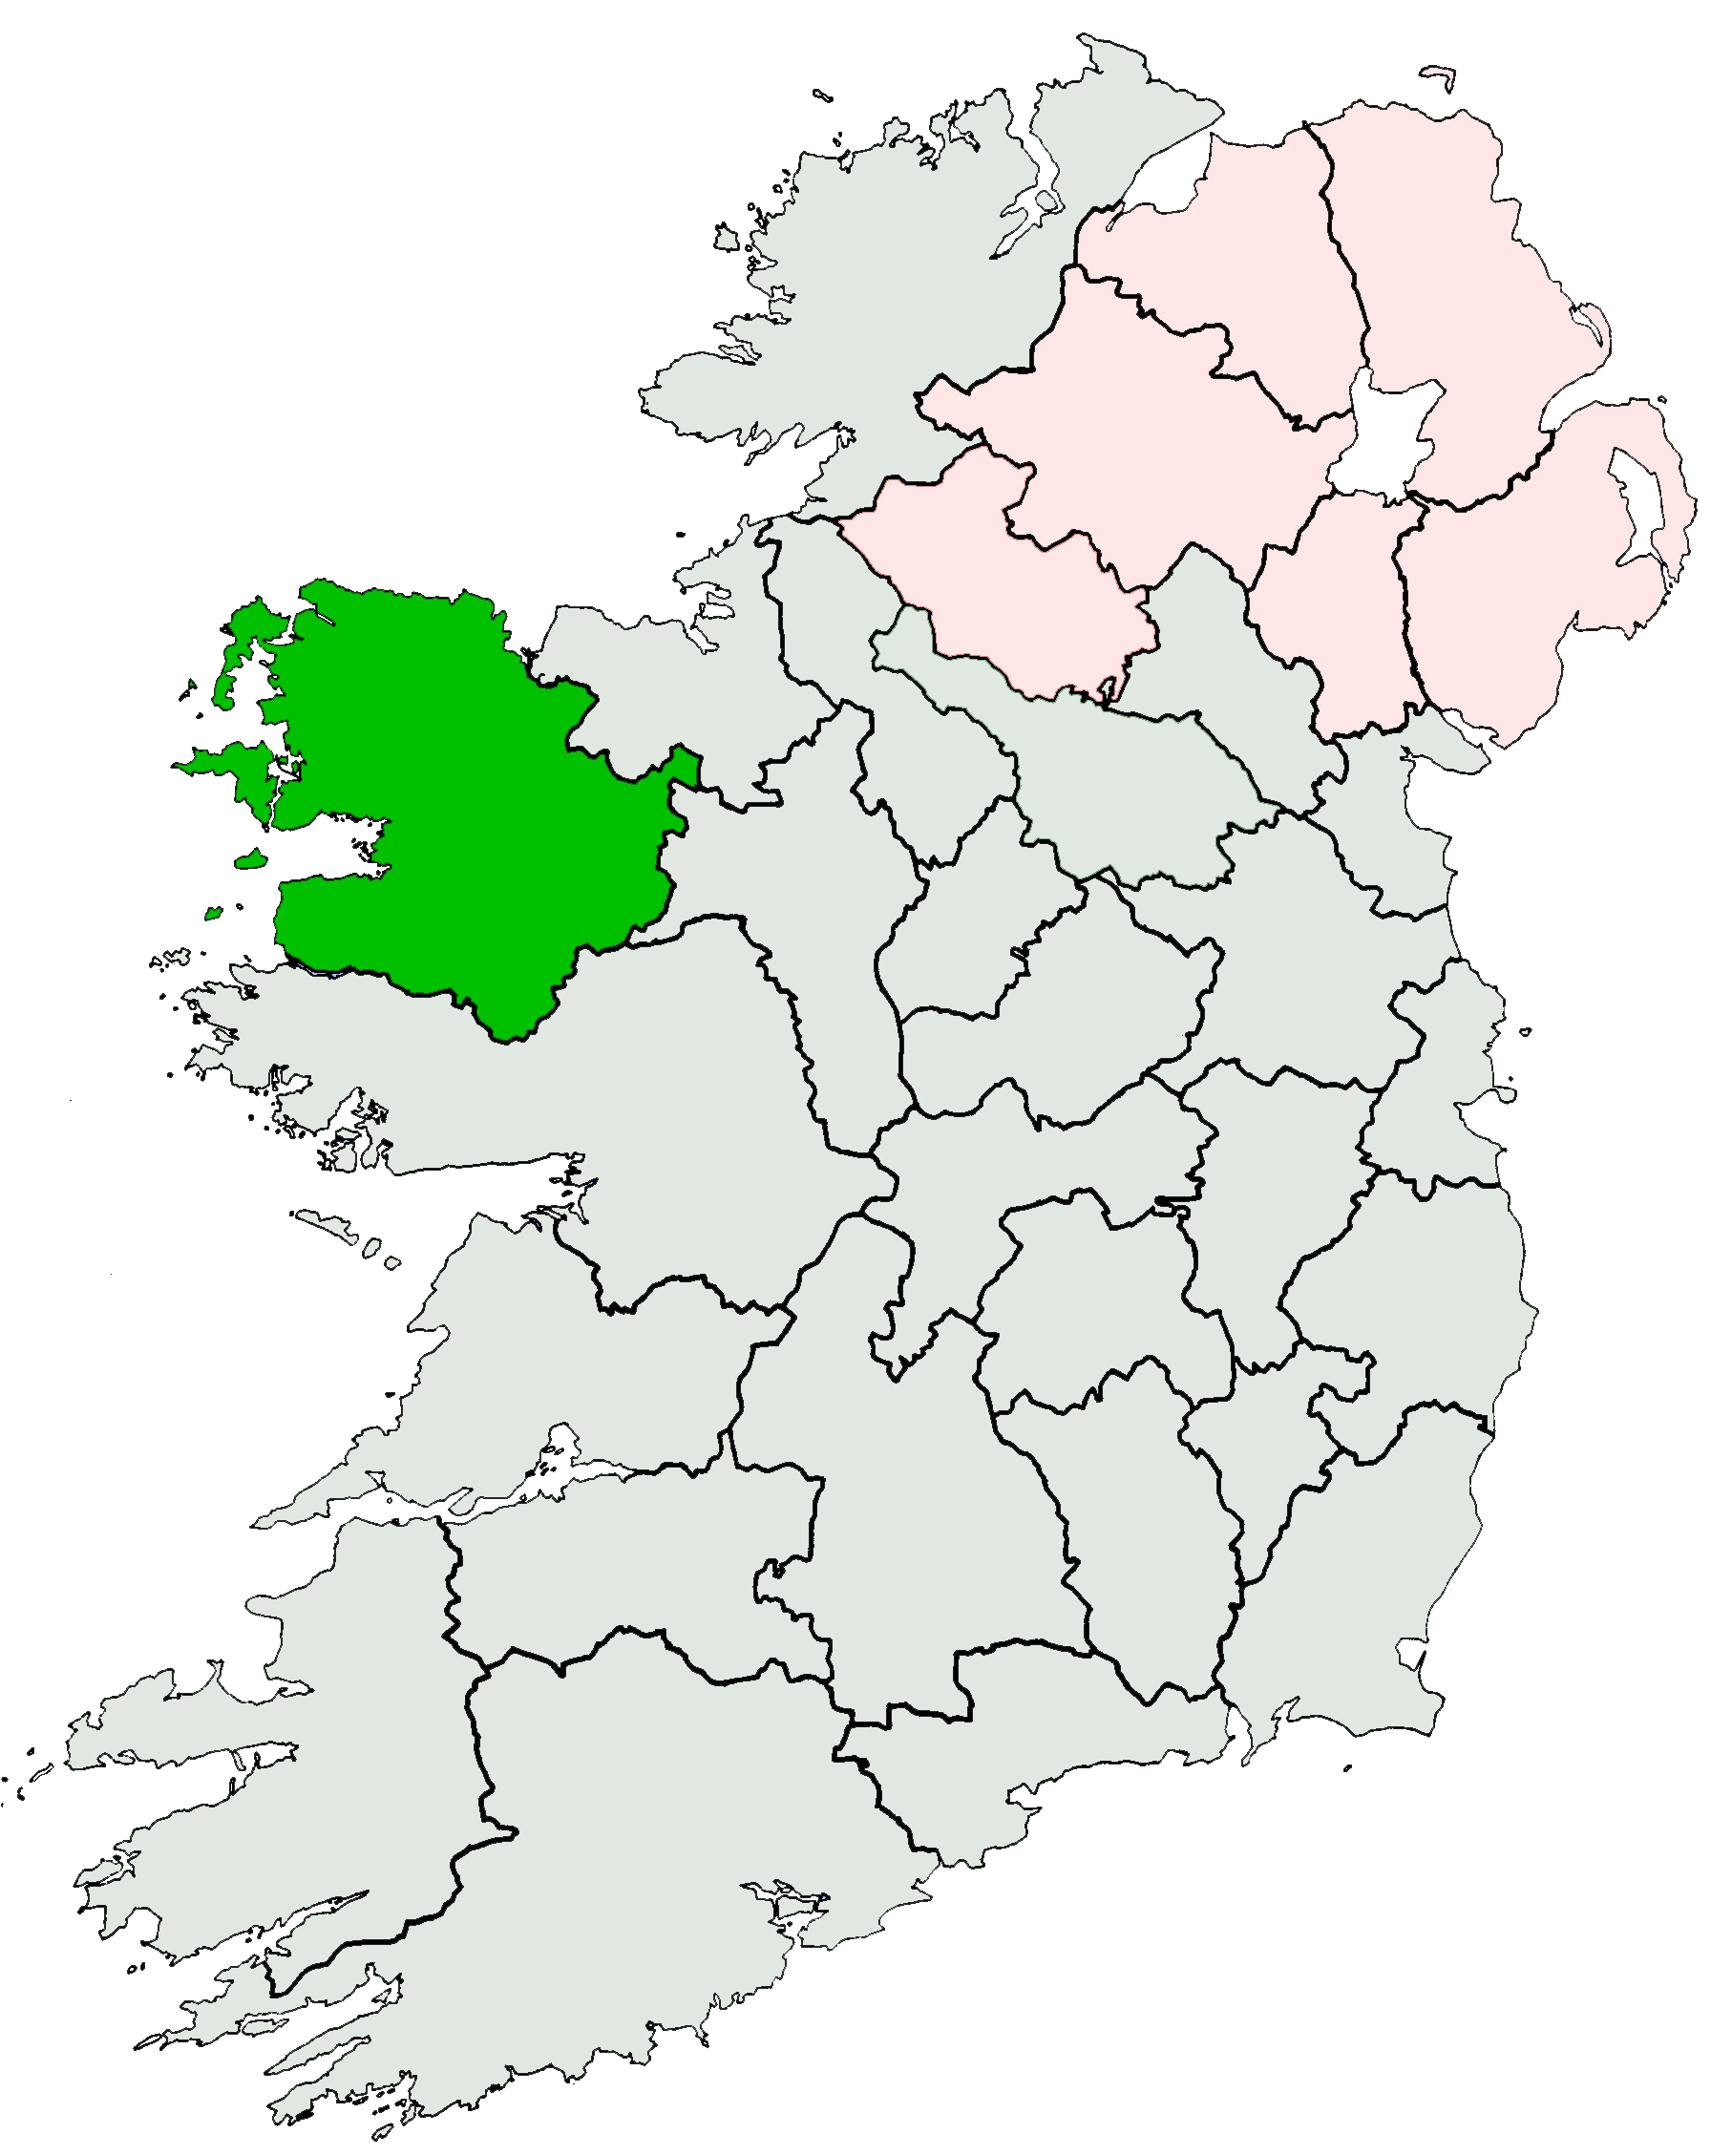 Map Of Ireland Mayo.File Ireland Location Mayo Jpg Wikimedia Commons